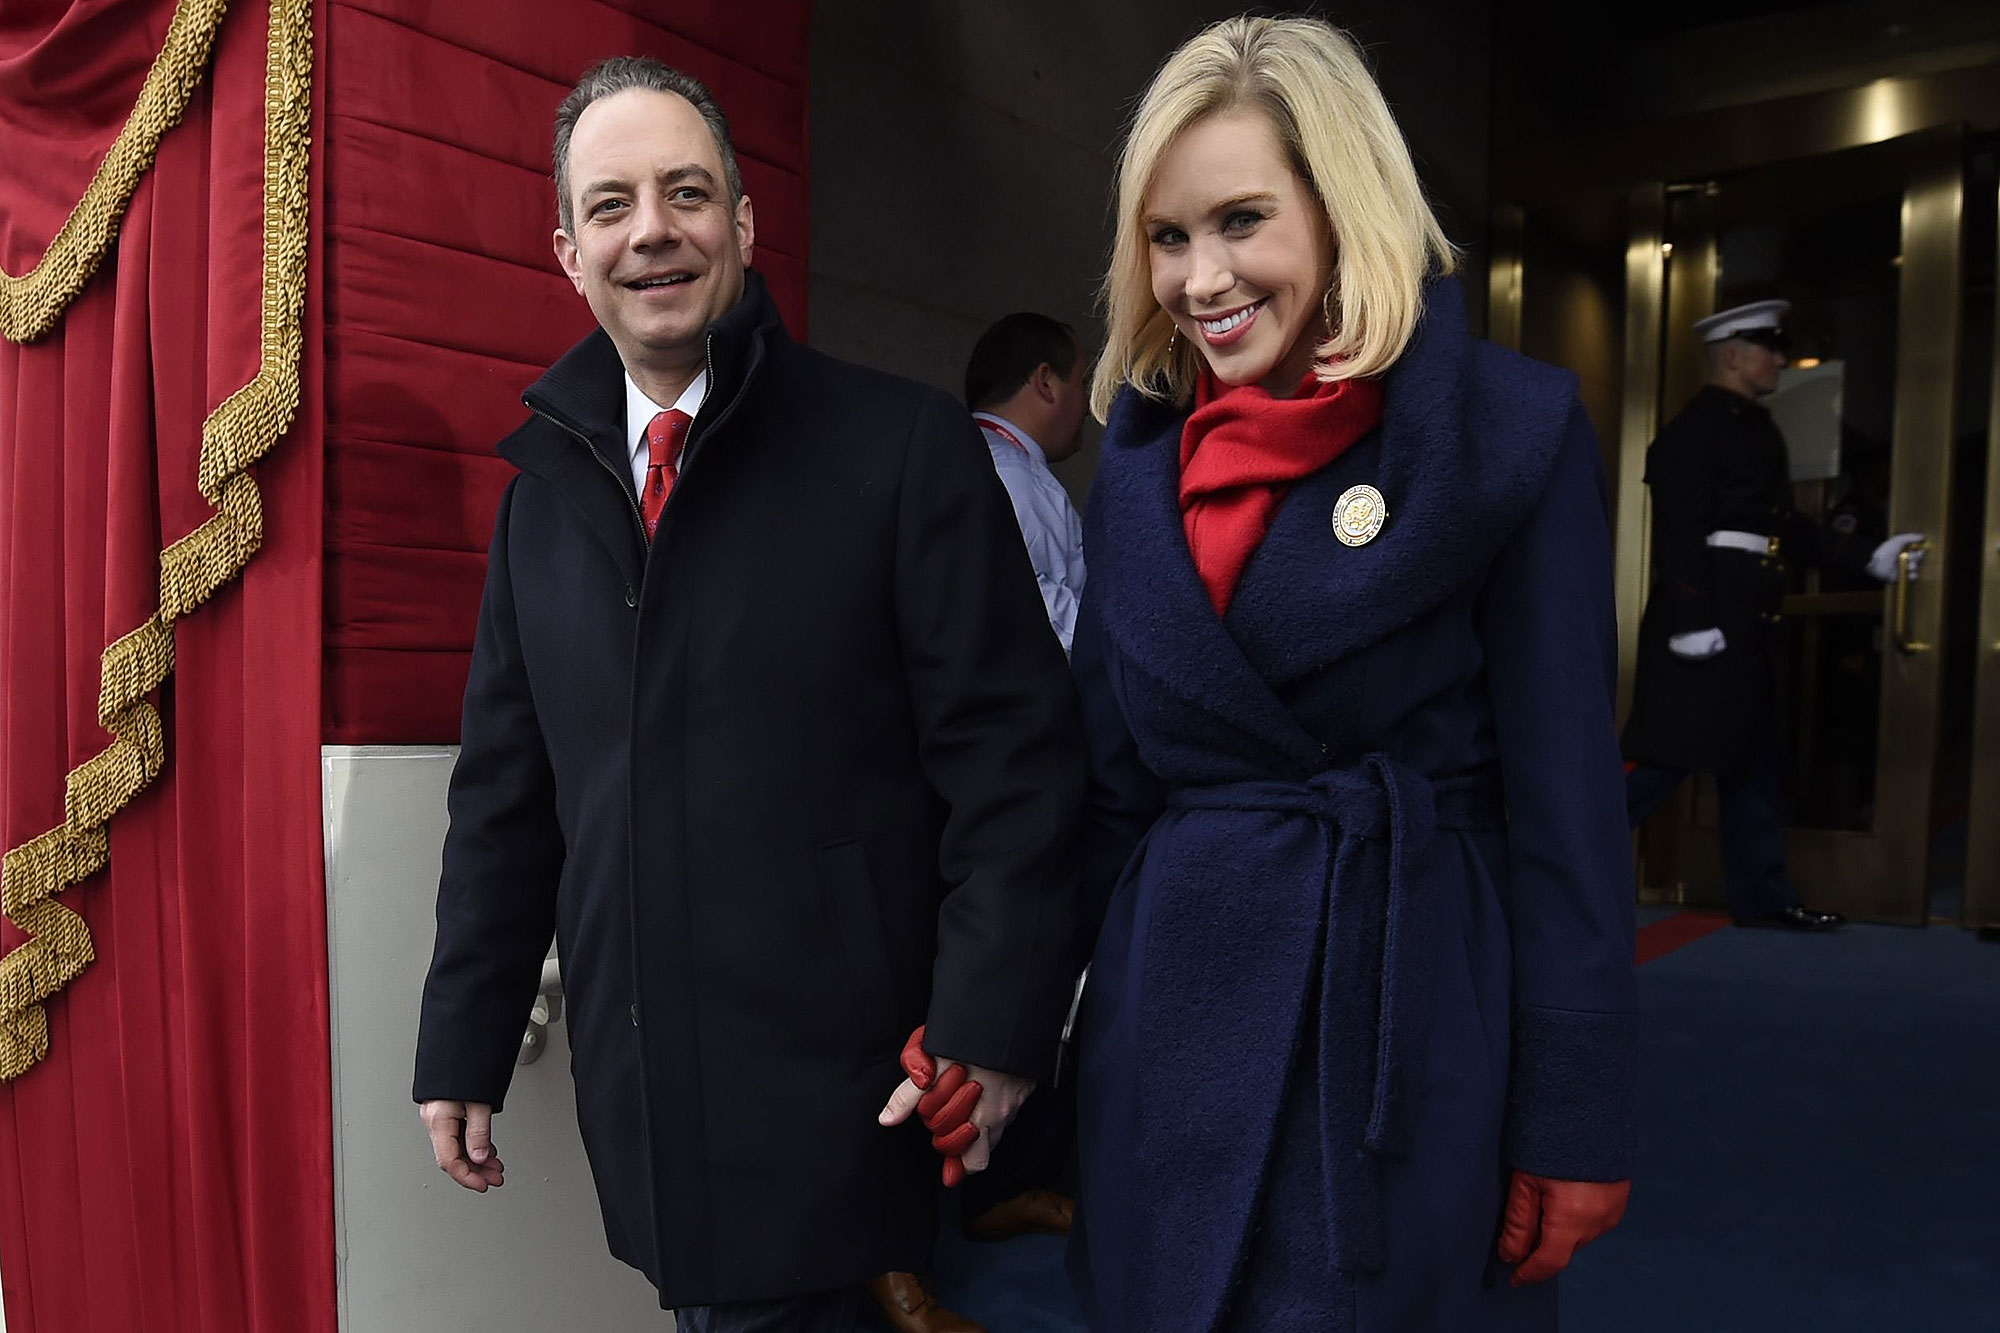 Reince Priebus, White House Chief of Staff to President-elect Donald Trump, and his wife Sally arrive for the Presidential Inauguration at the US Capitol in Washington, DC, January 20, 2017. / AFP / POOL / SAUL LOEB (Photo credit should read SAUL LOEB/AFP/Getty Images)